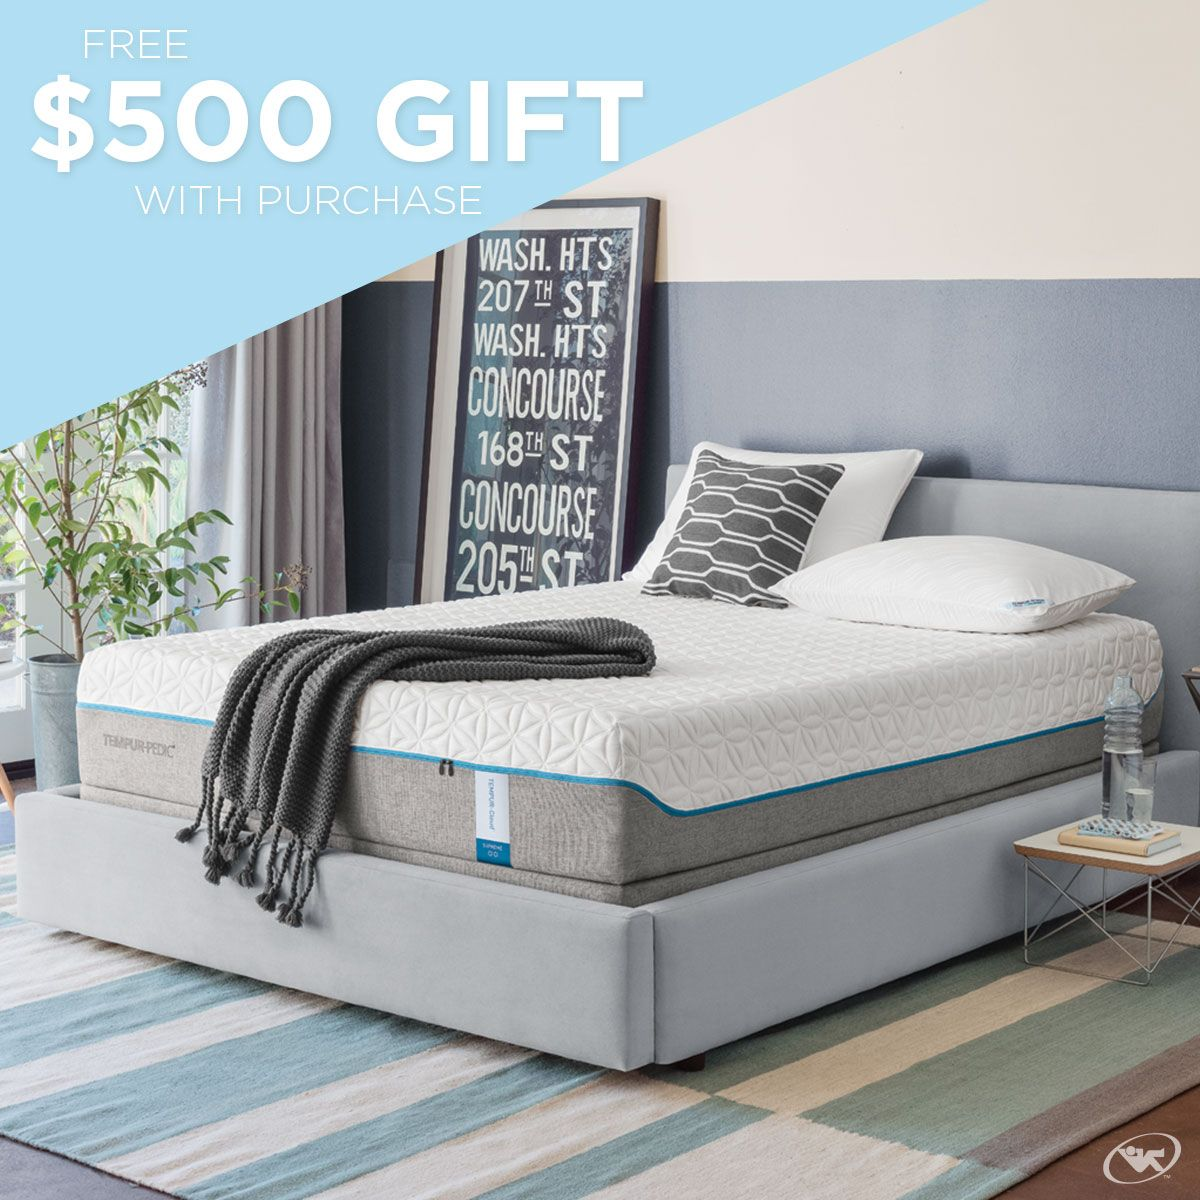 sleep with ease and receive a free 500 gift when you purchase a